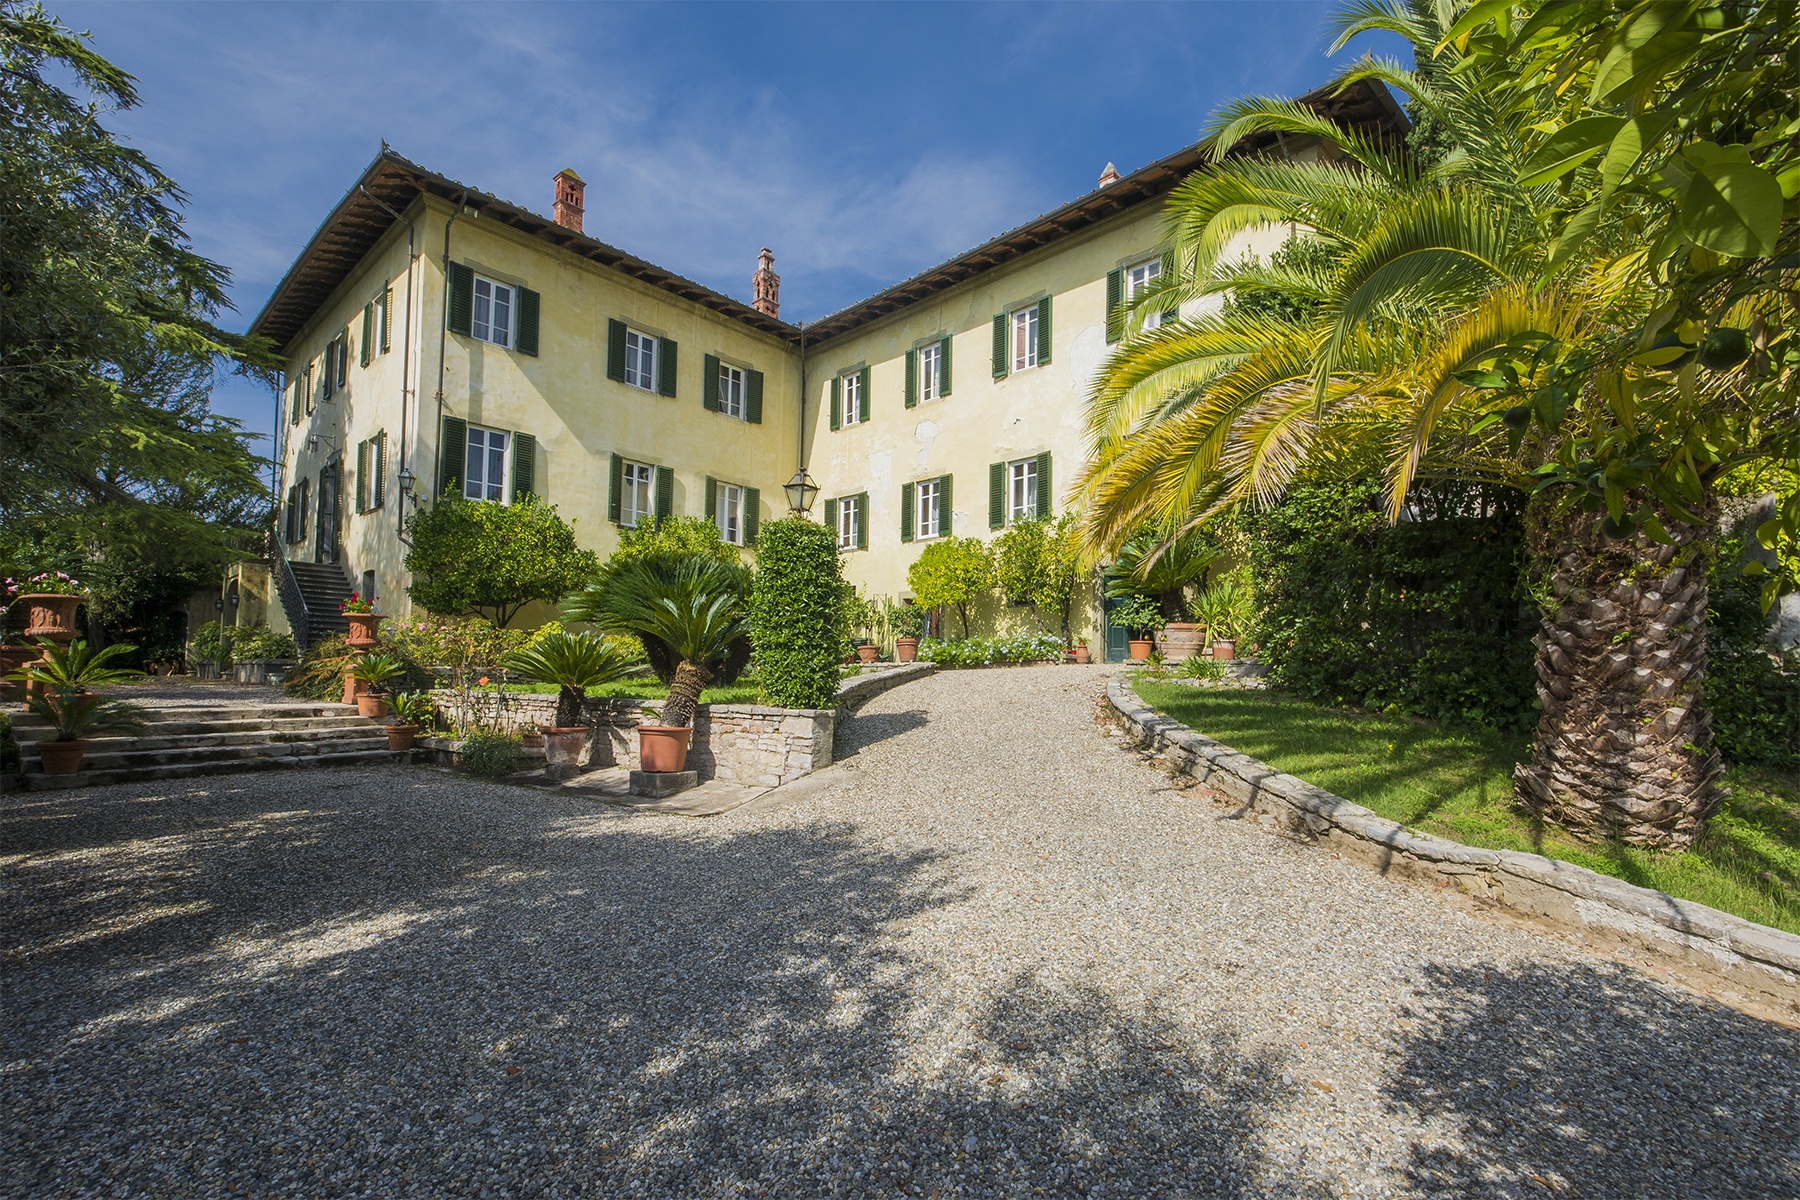 17th century villa with olive groves and vineyards Lucca, Lucca Italien